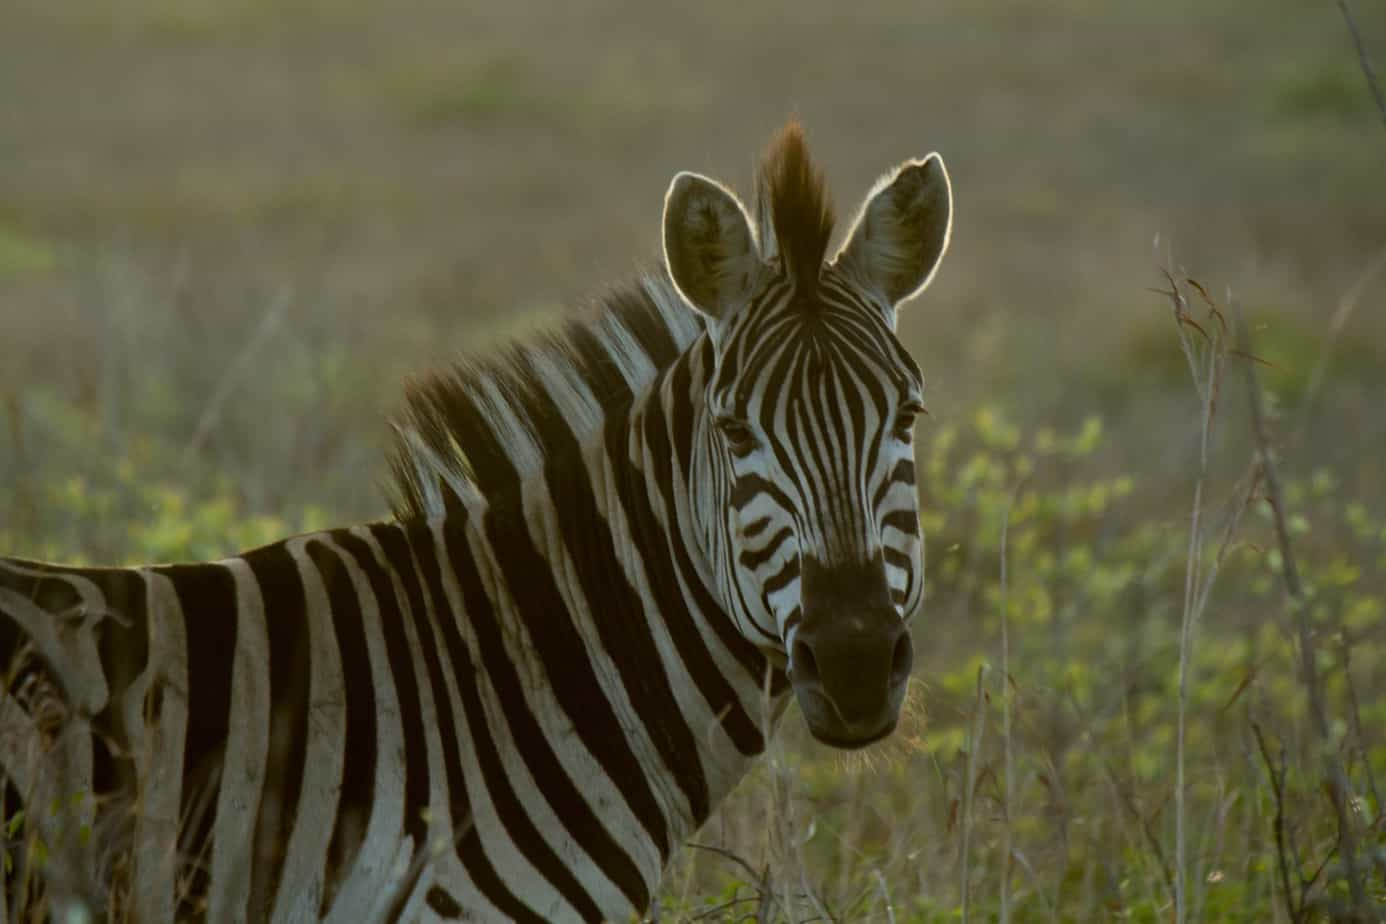 Plains Zebra @ Tembe Elephant Park. Photo: Håvard Rosenlund